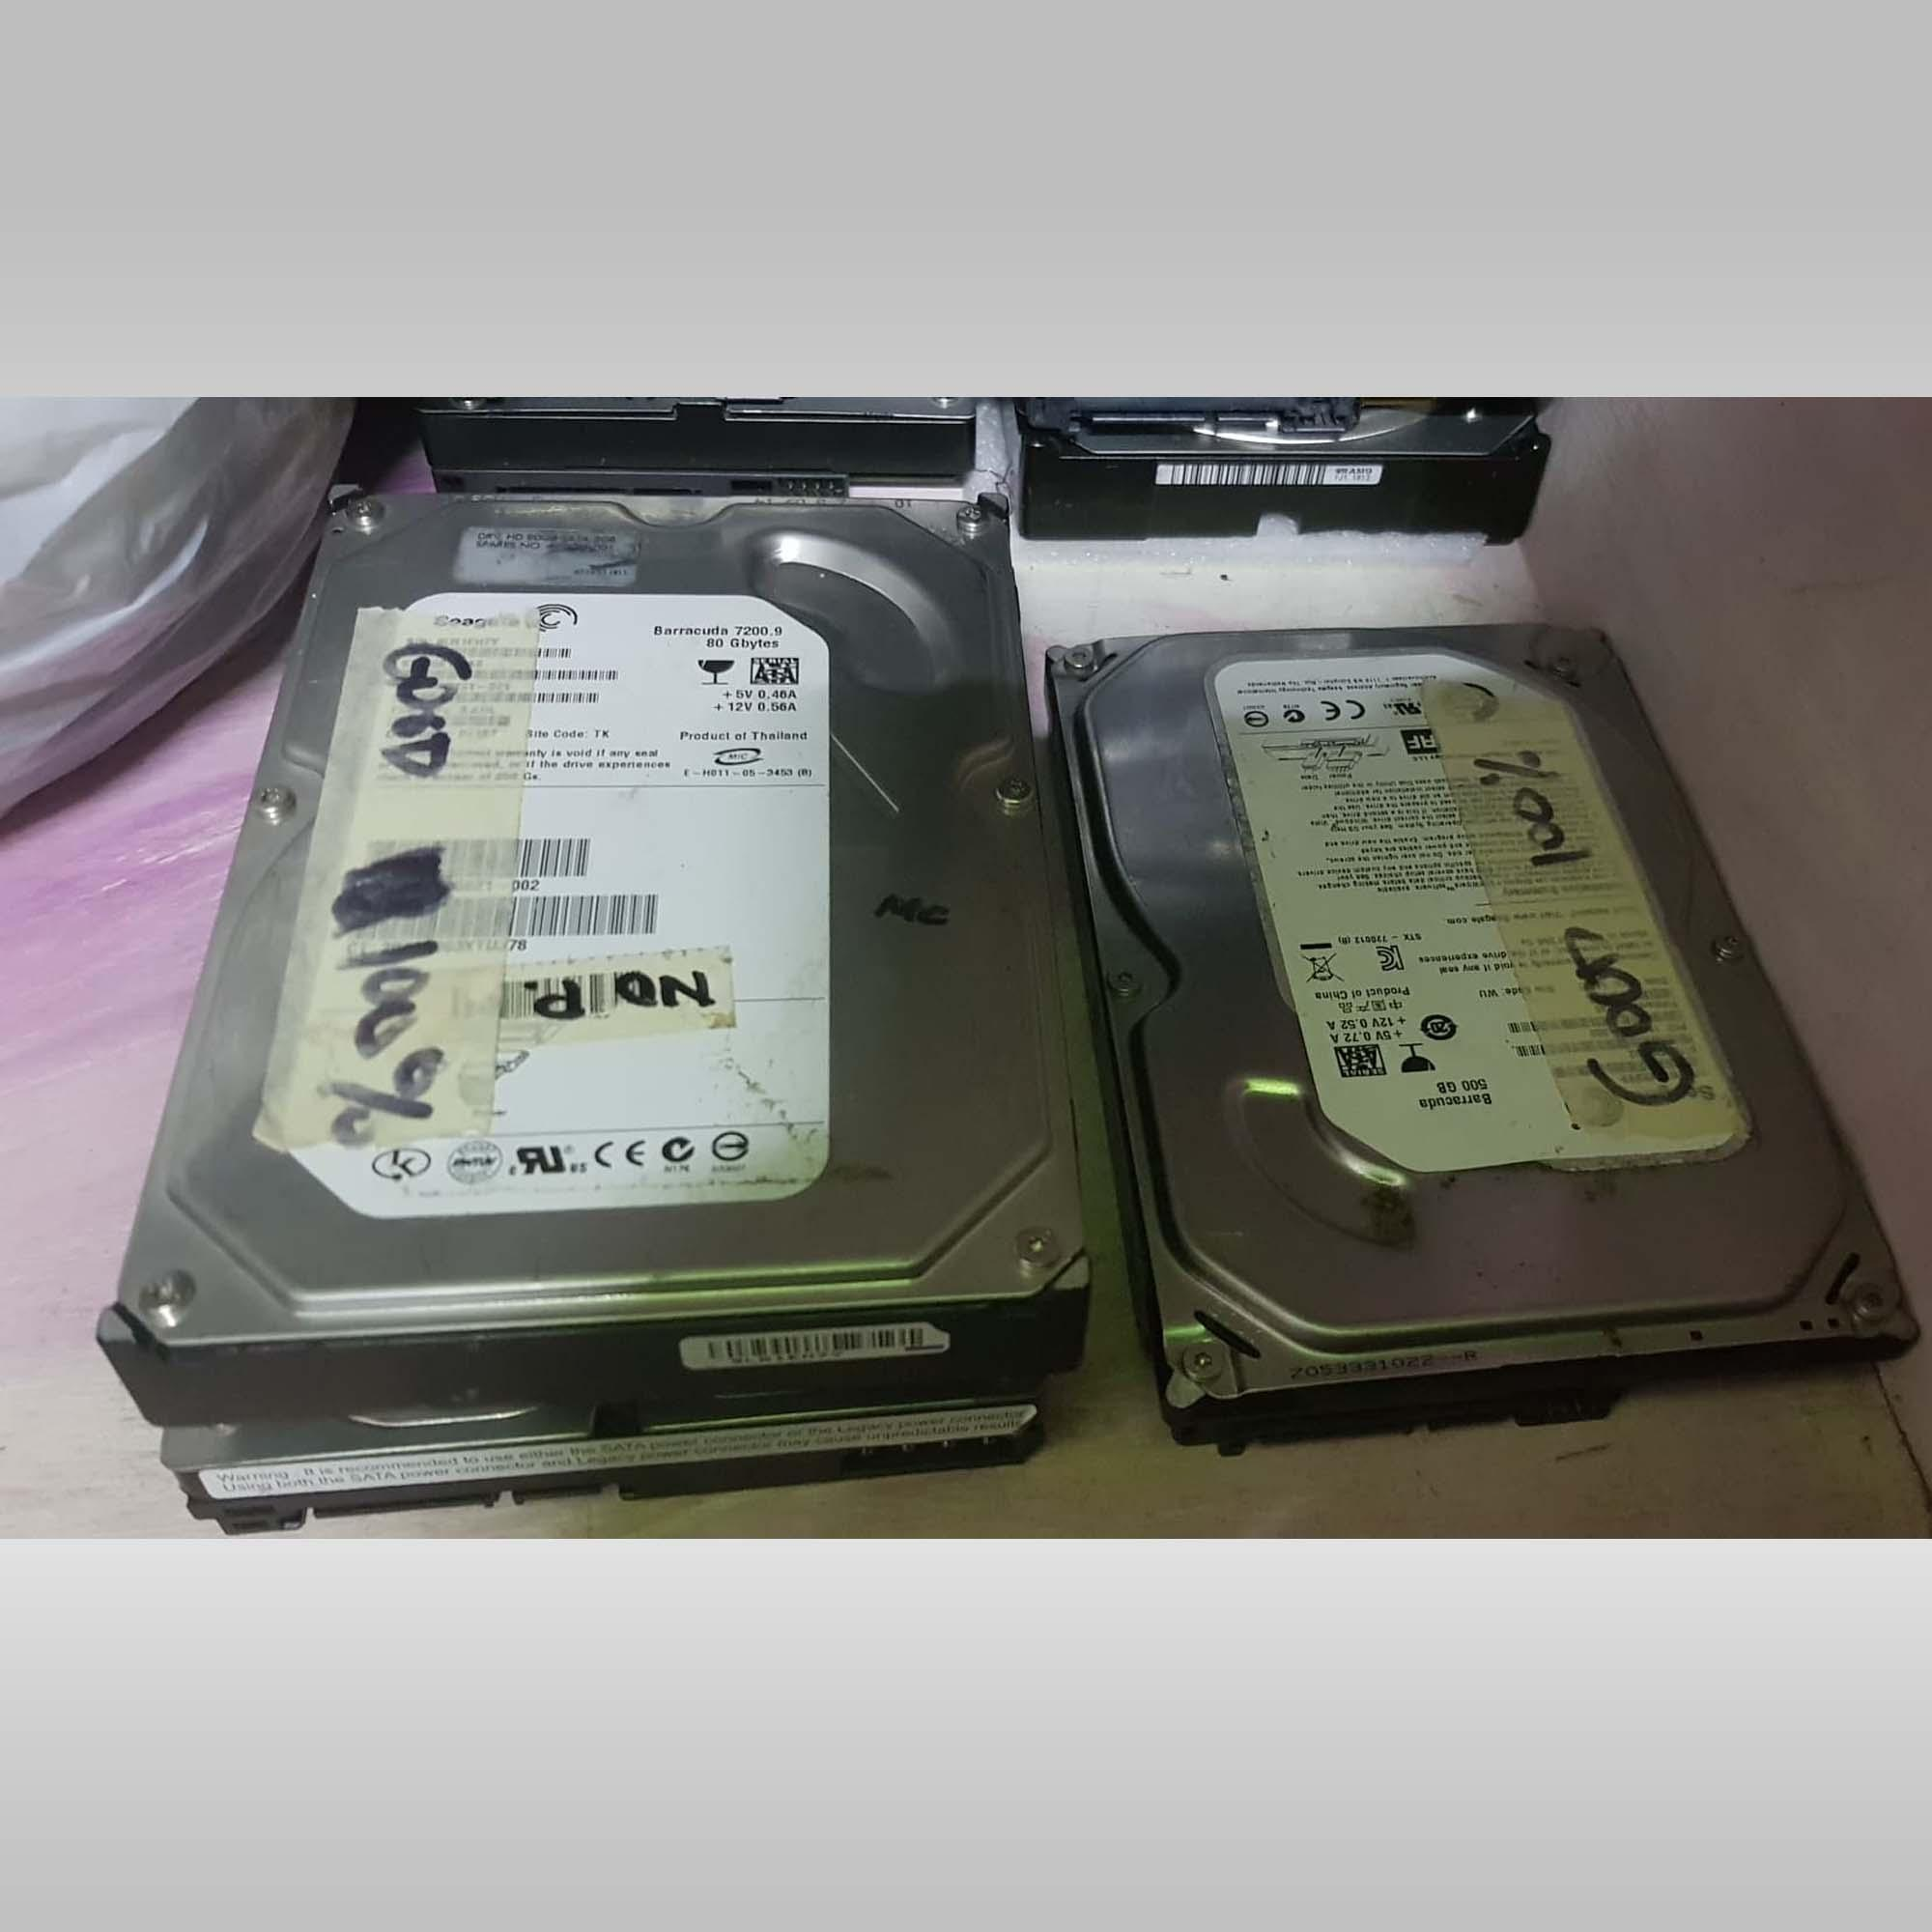 Hdd For Sale Hard Disk Drives Prices Brands Specs In 320 Gb Wd Blue 35 160gb 250gb Sata Desktop 35inch Used Refurbished